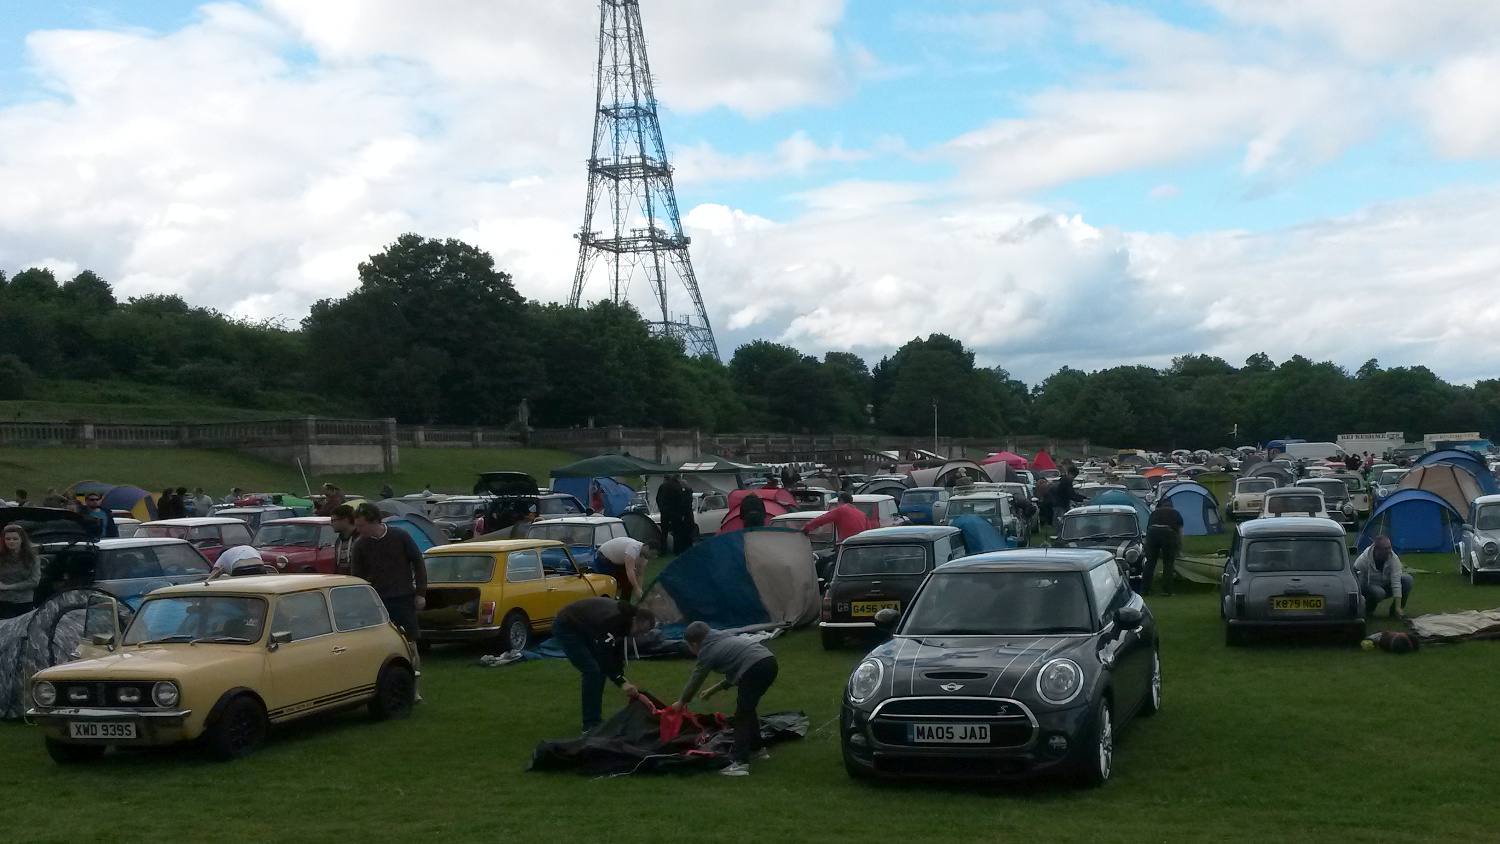 Campsite of the Mini Run in Crystal Palace, London